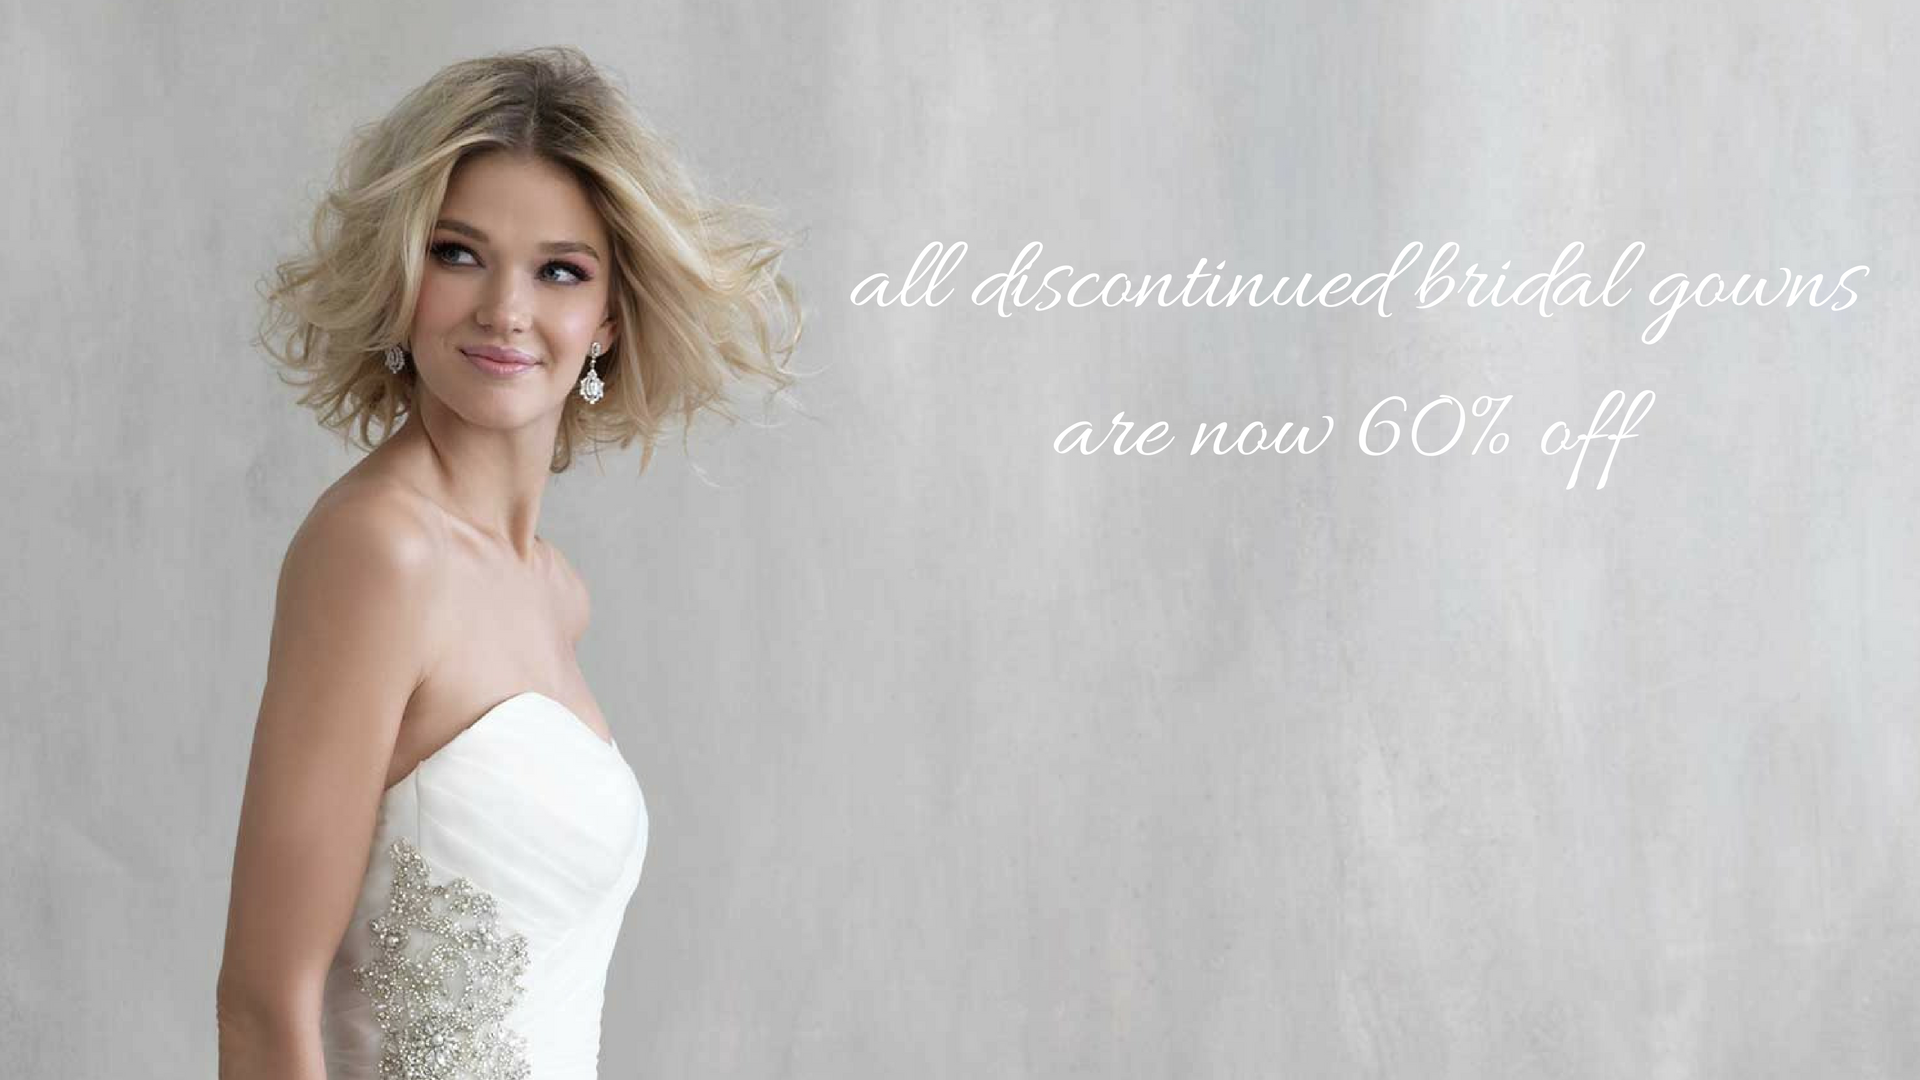 all-discontinued-bridal-gowns-are-now-60-off